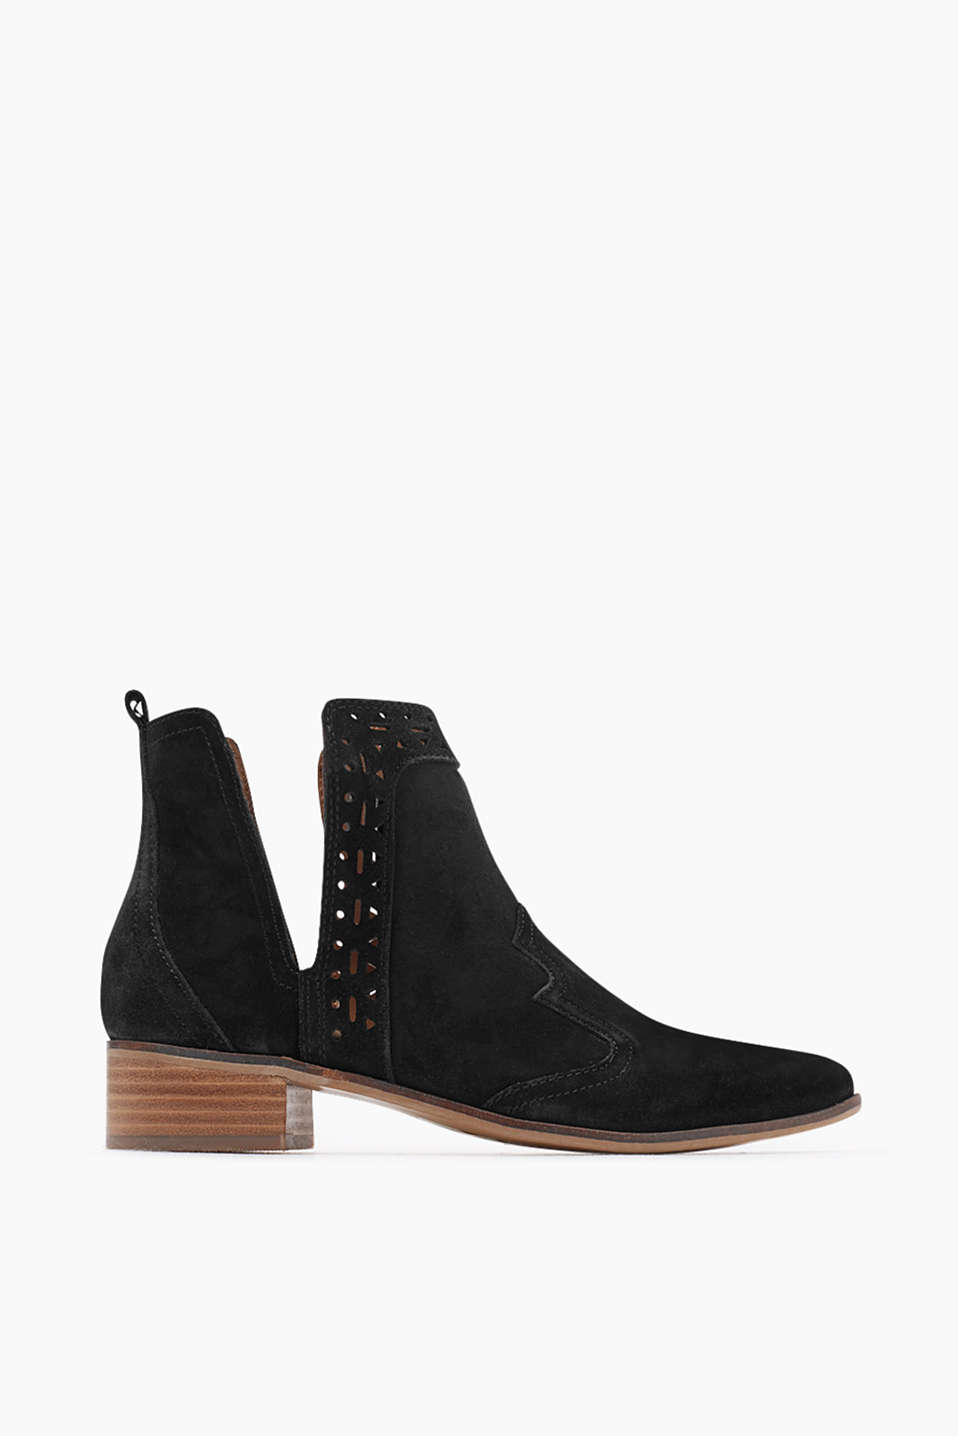 Chelsea boots in a pointed design with cowboy details